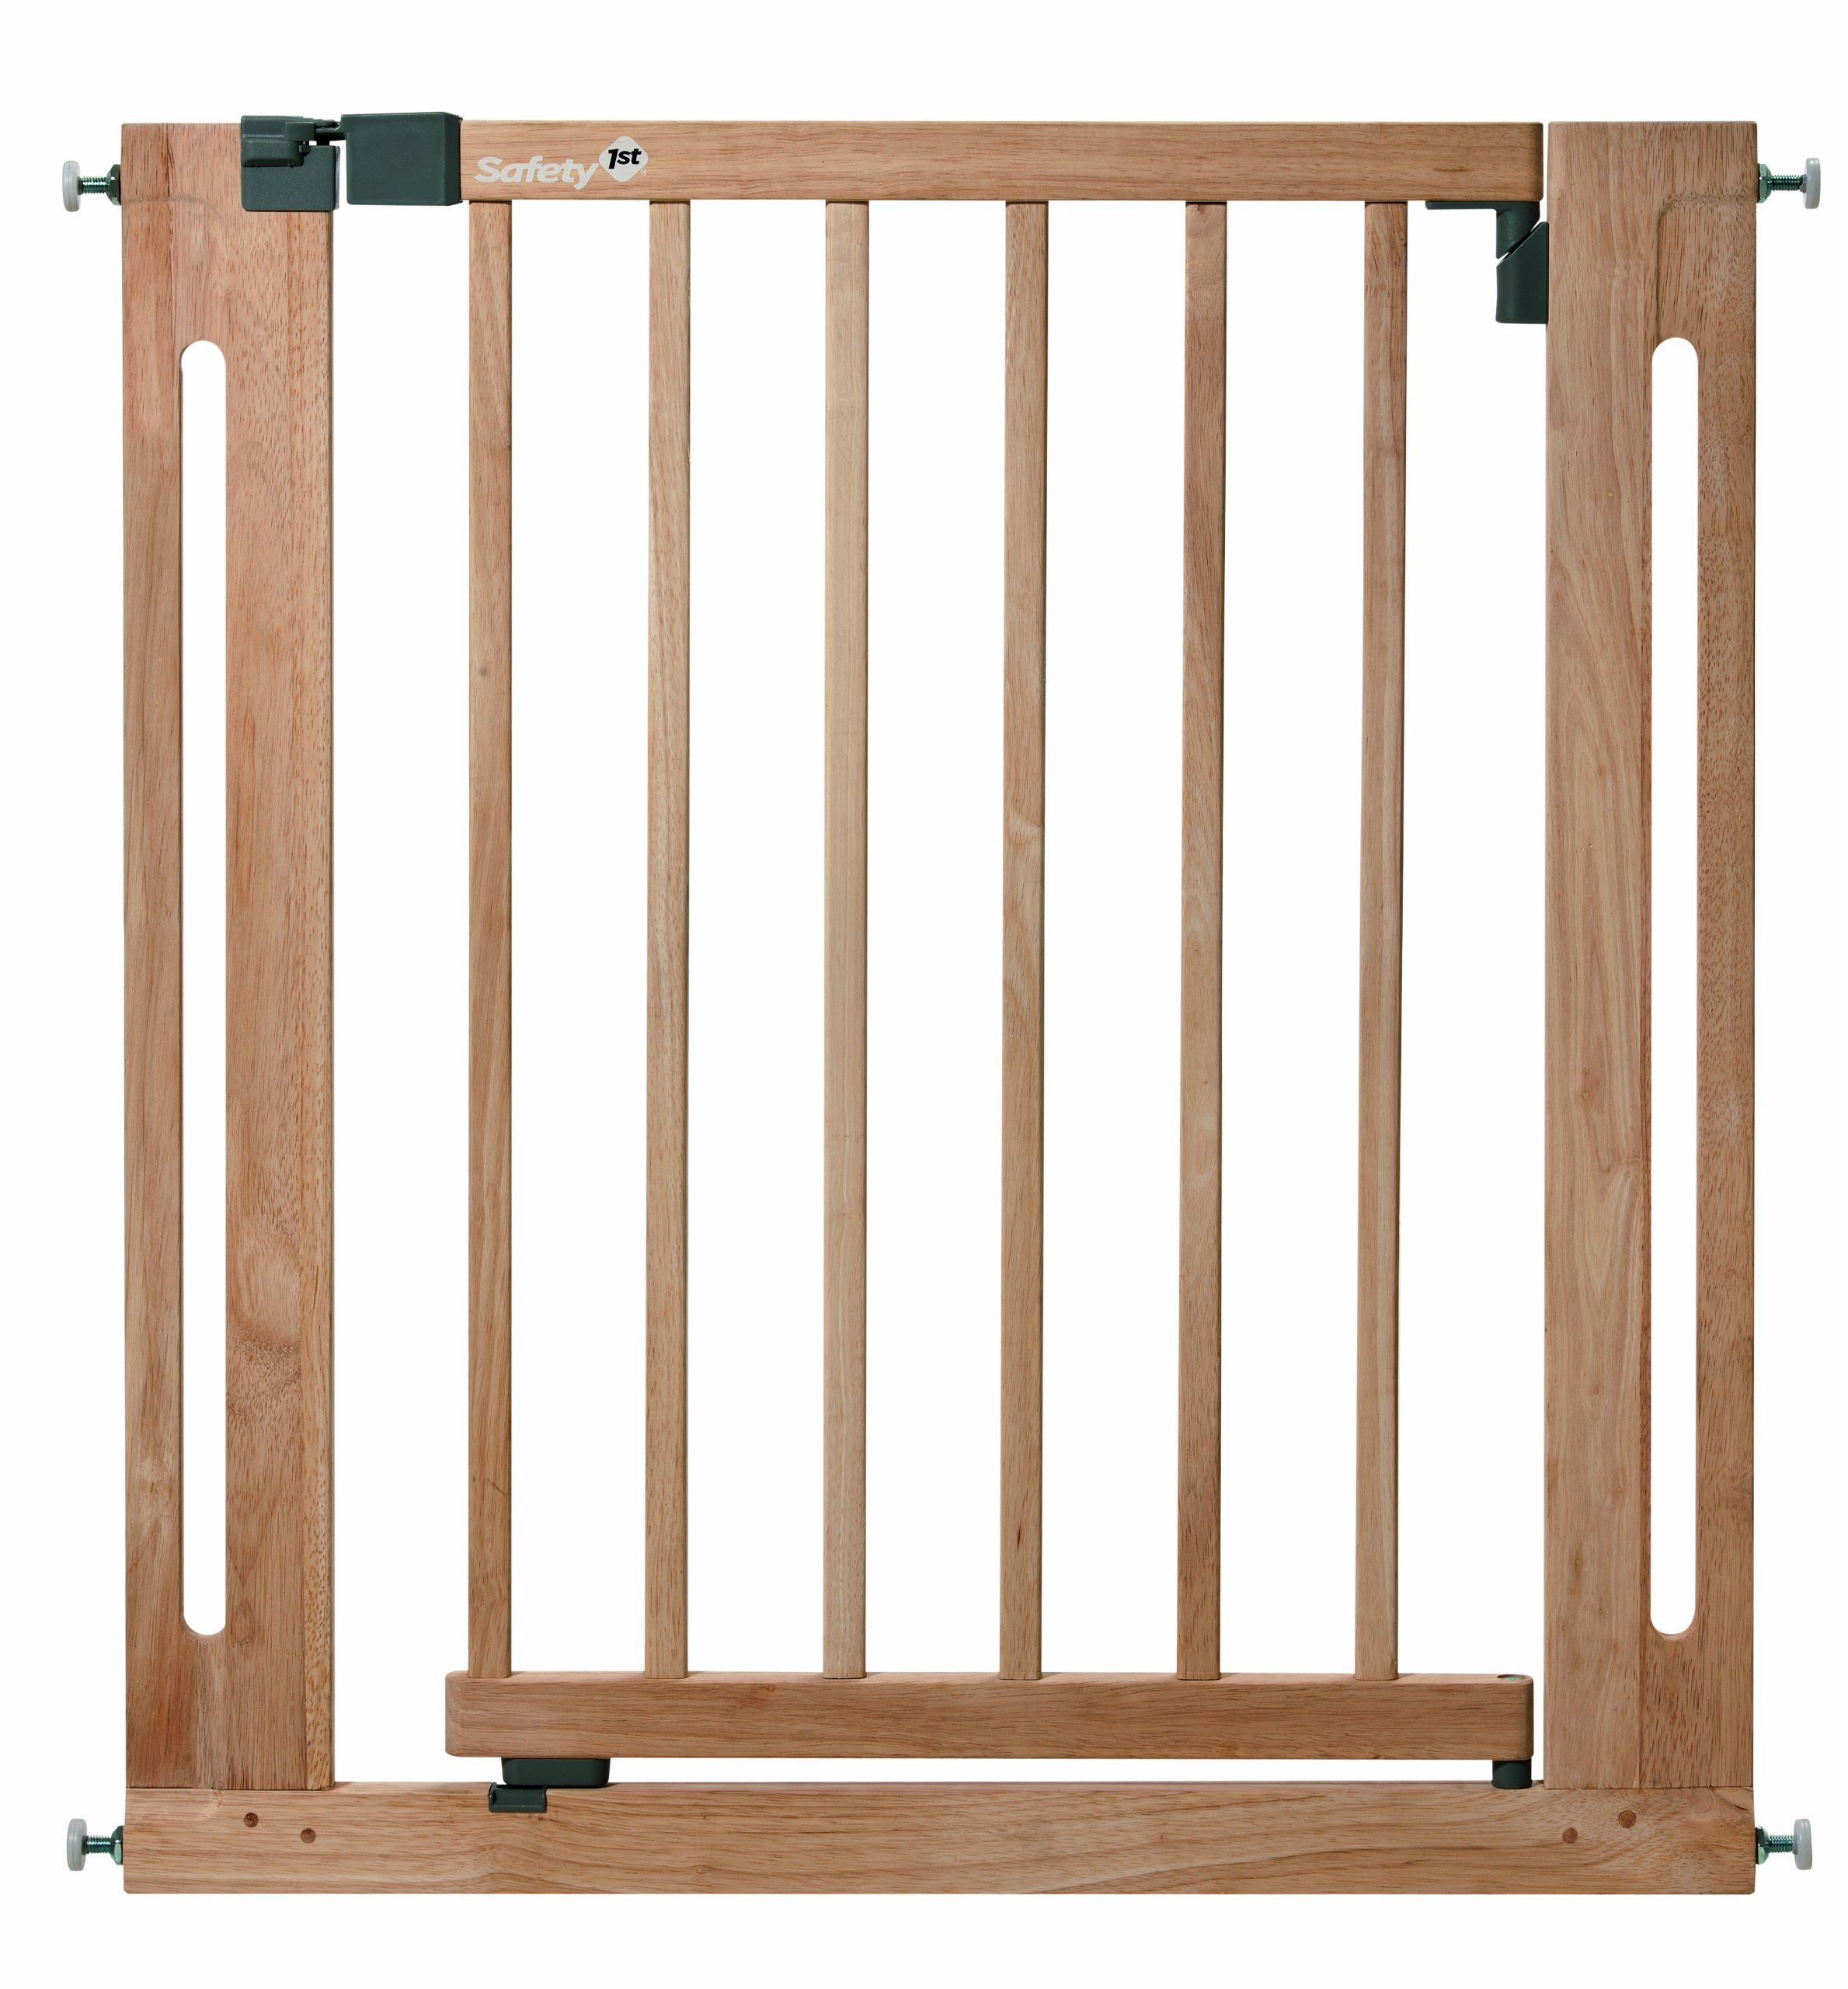 Safety 1st Easy Close Safety Gate Made from Wood